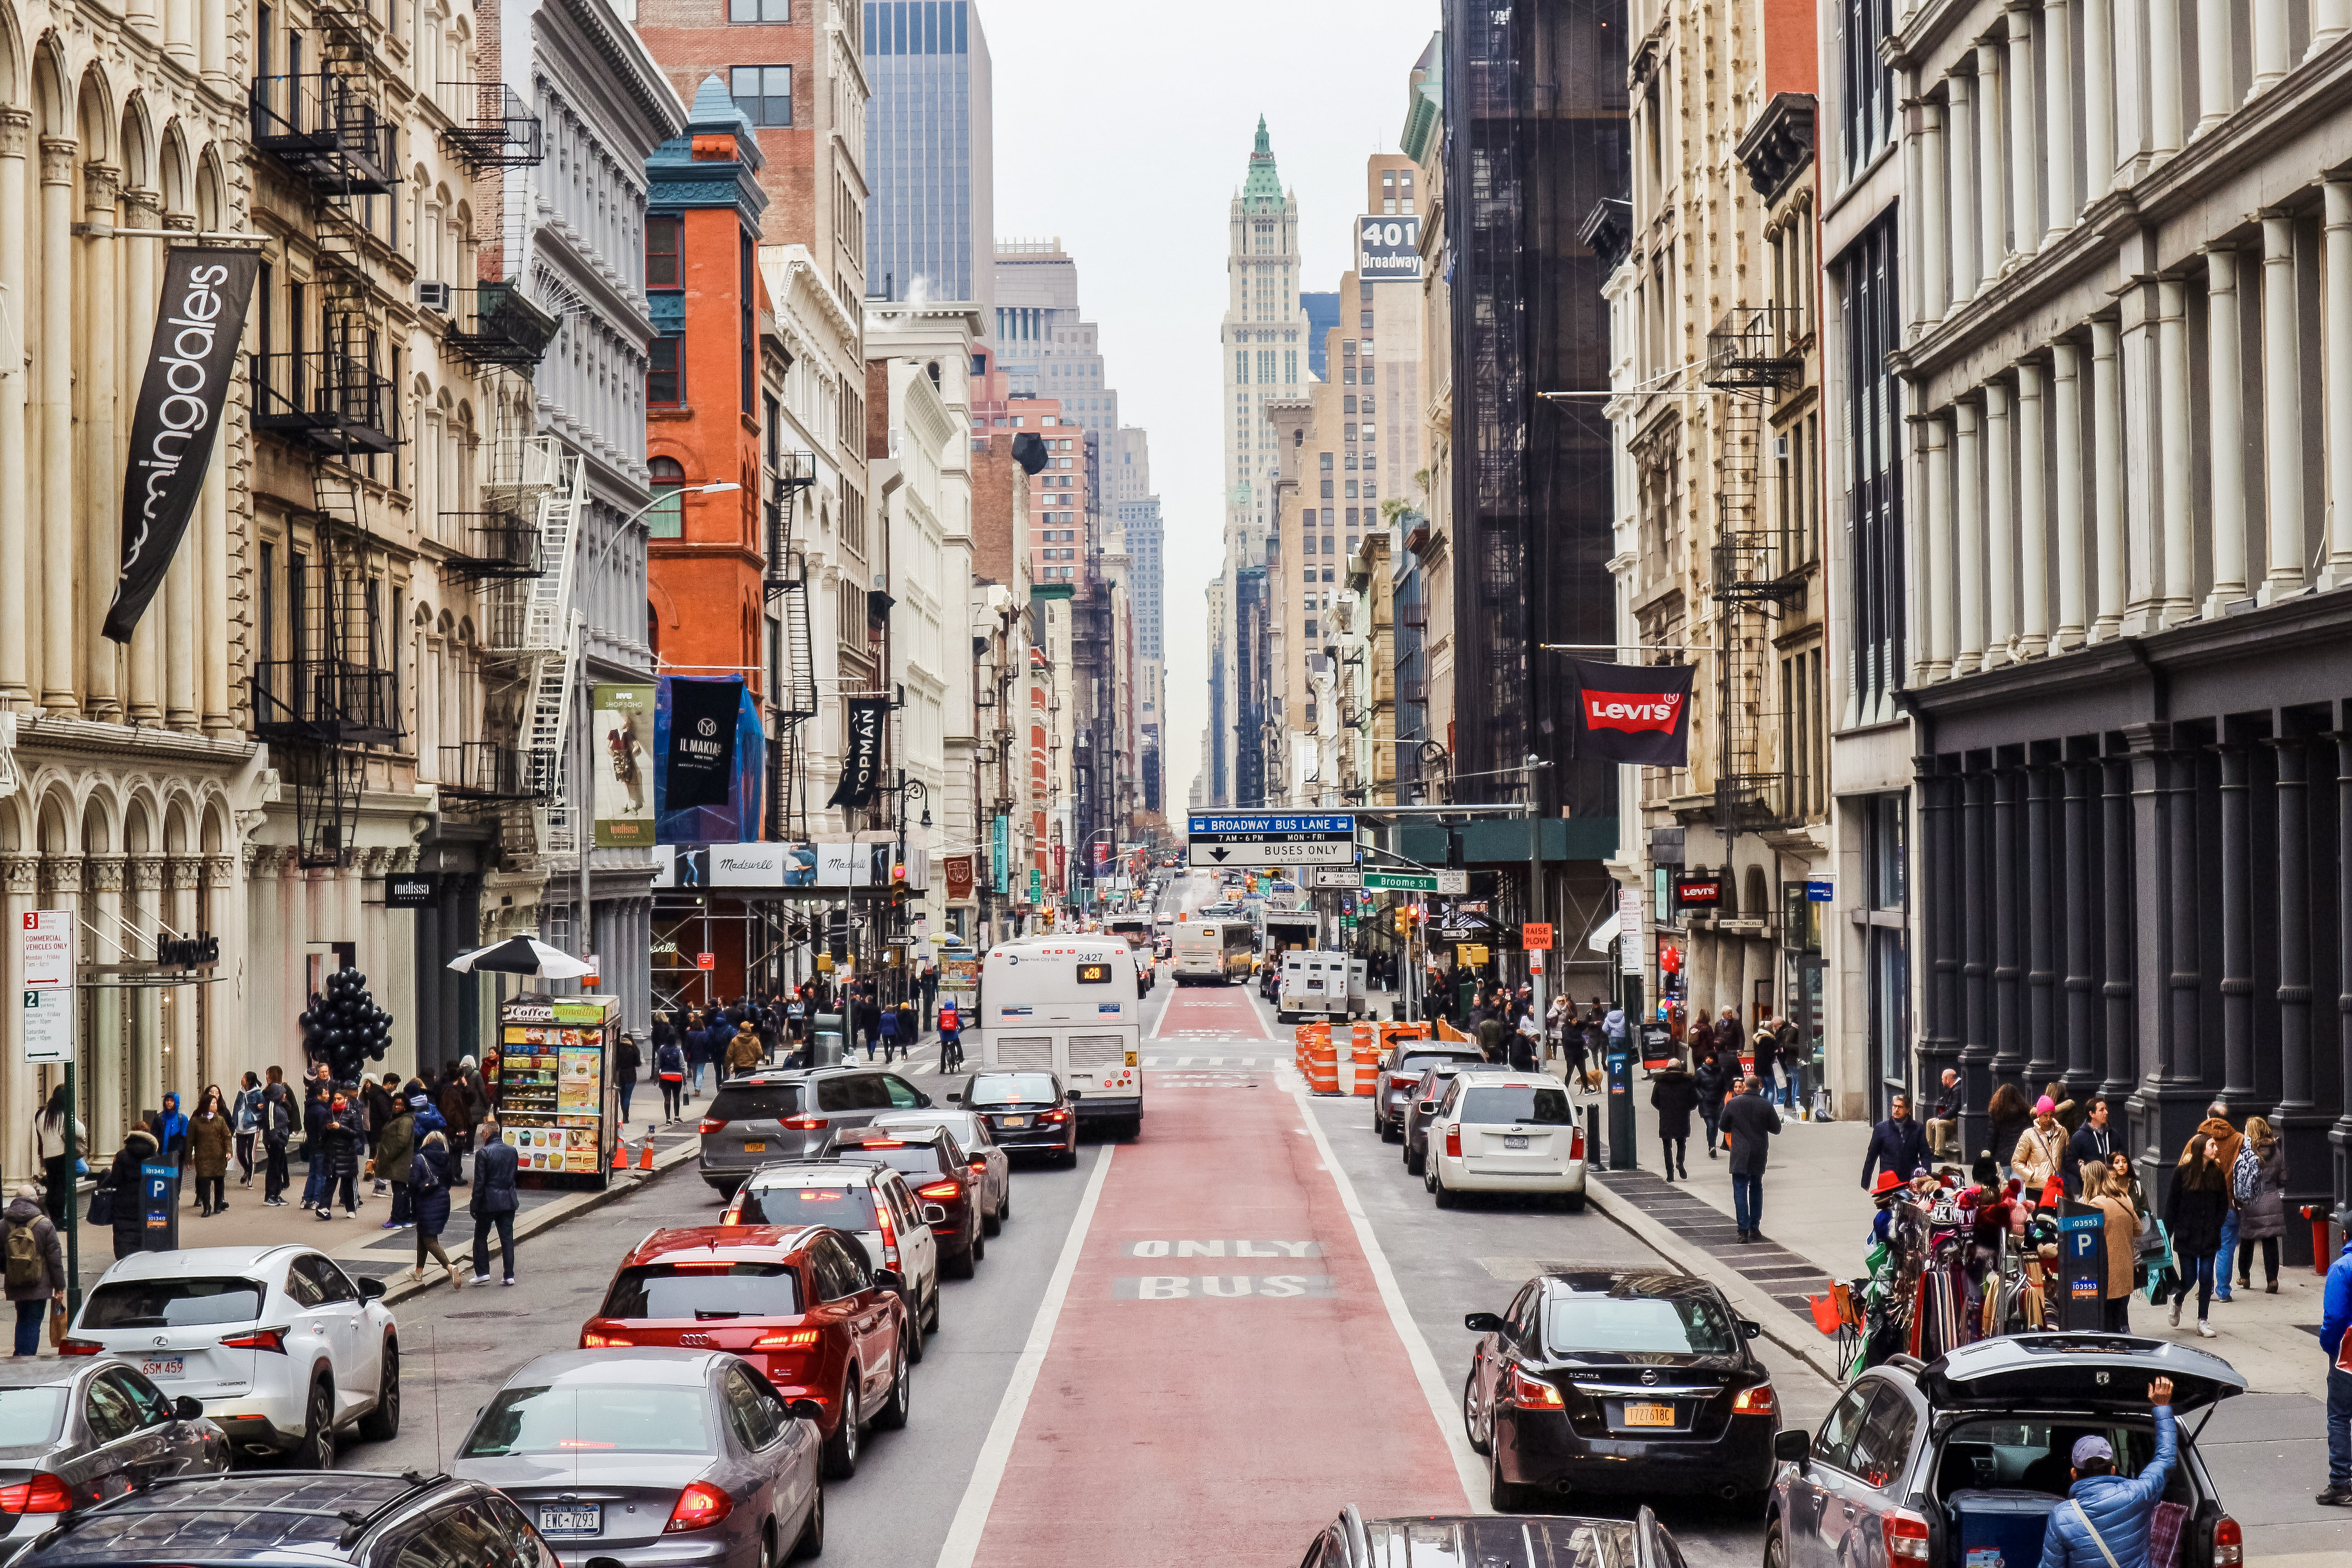 Broadway | 5 top tips for planning a visit to New York City | Things you should know before you visit the big apple | Travel Guide | Elle Blonde Luxury Lifestyle Destination Blog